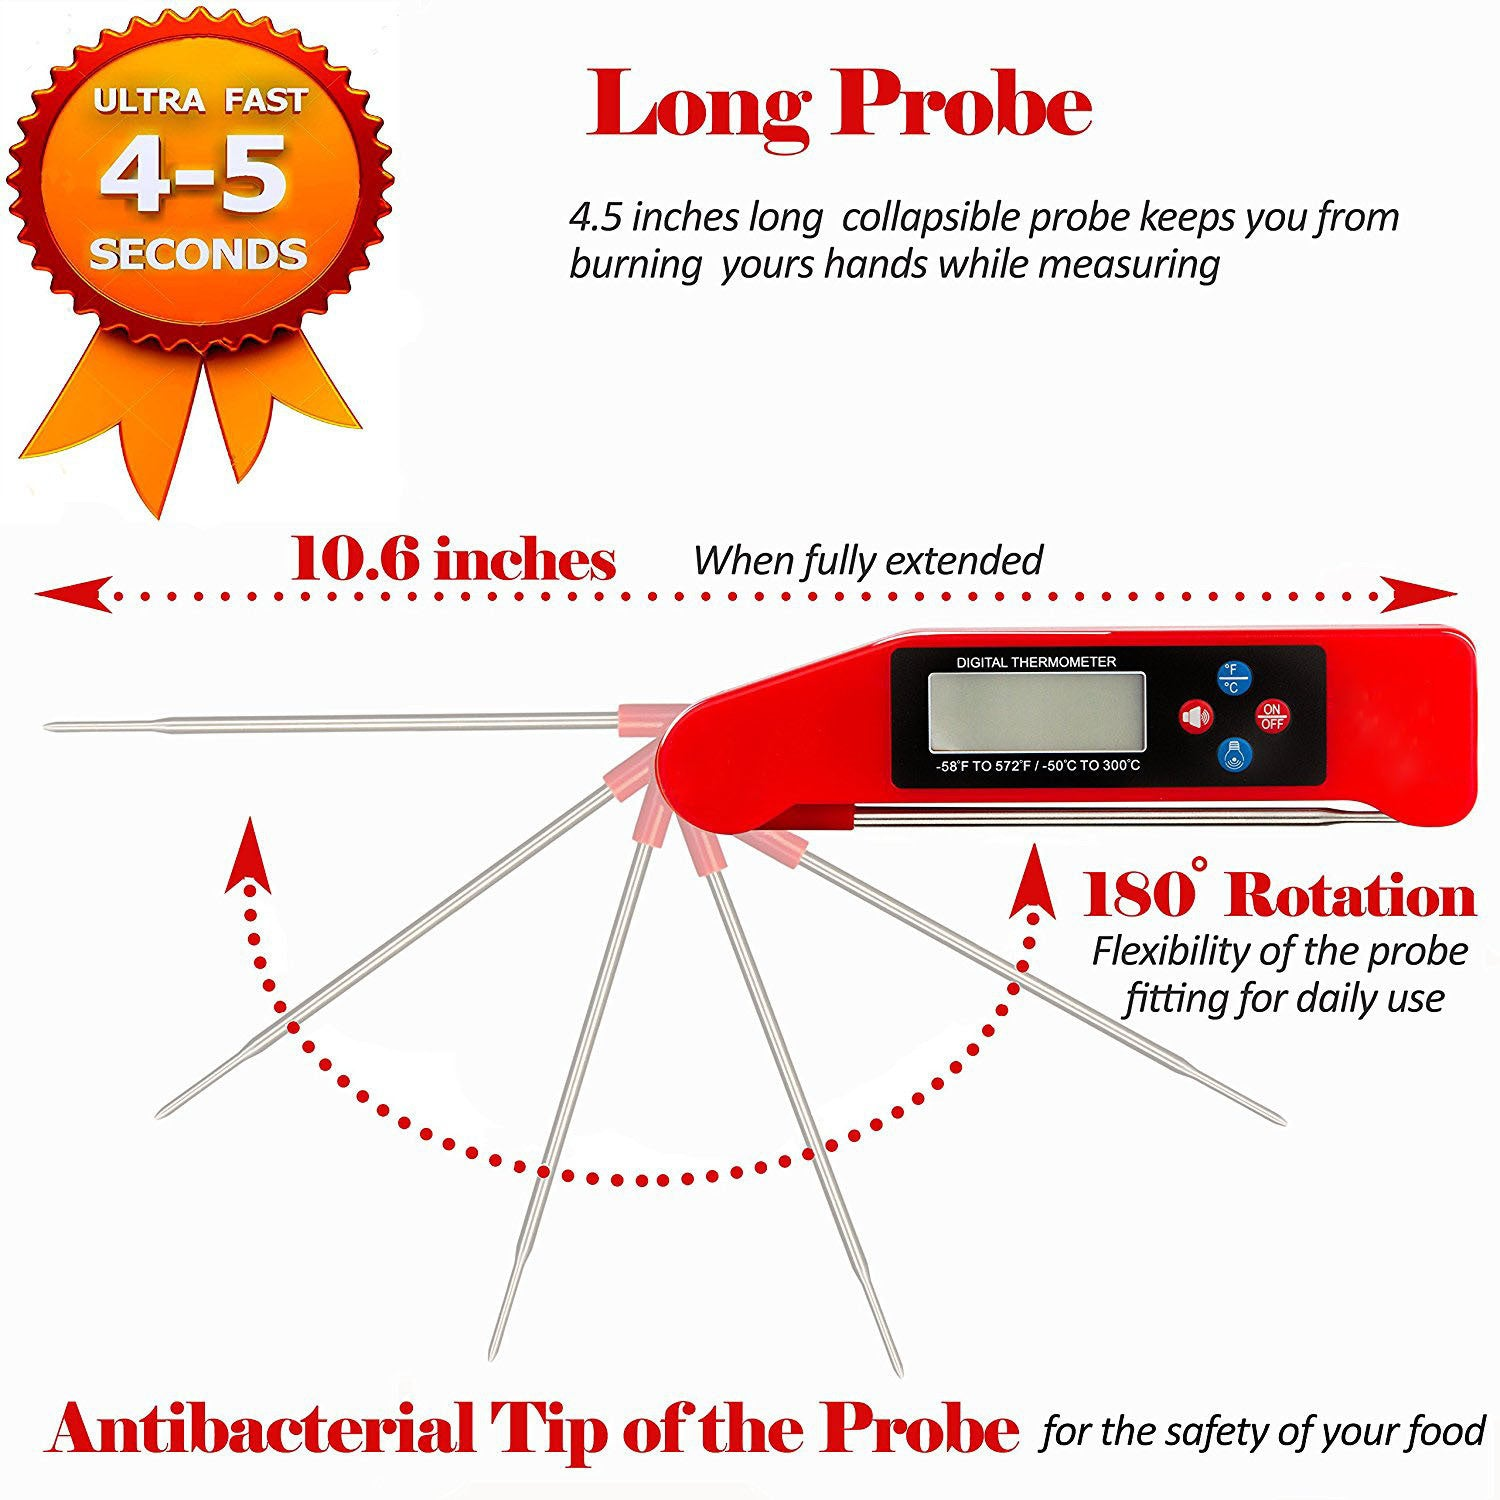 Instant Read Meat Thermometer For Grill And Cooking  UPGRADED MODEL NOW  WITH MAGNET AND CALIBRATION FEATURE  Best Ultra Fast Digital Kitchen Probe